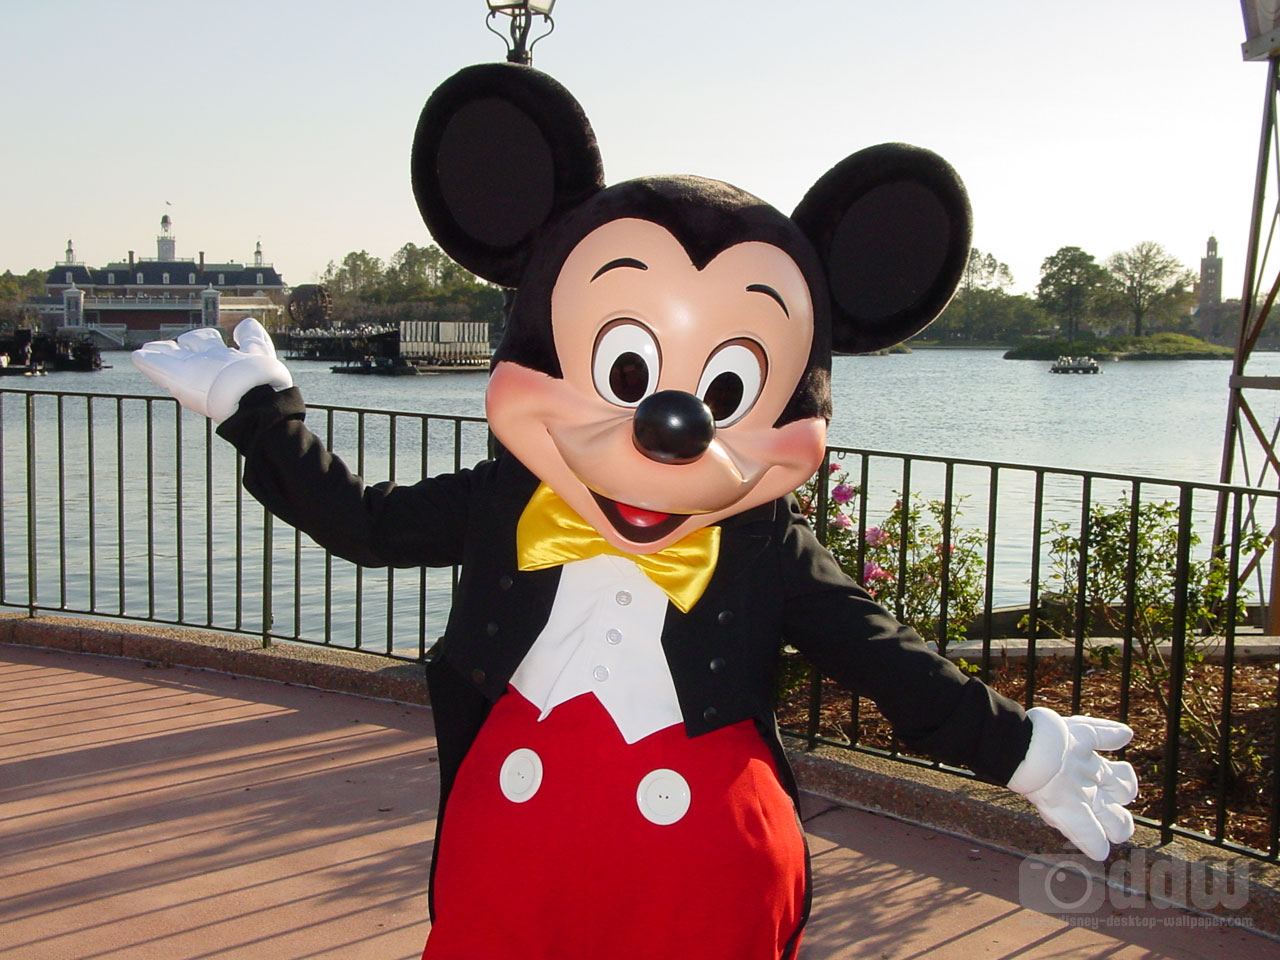 La vida es cuento: LA ILUSIN DE MICKEY MOUSE